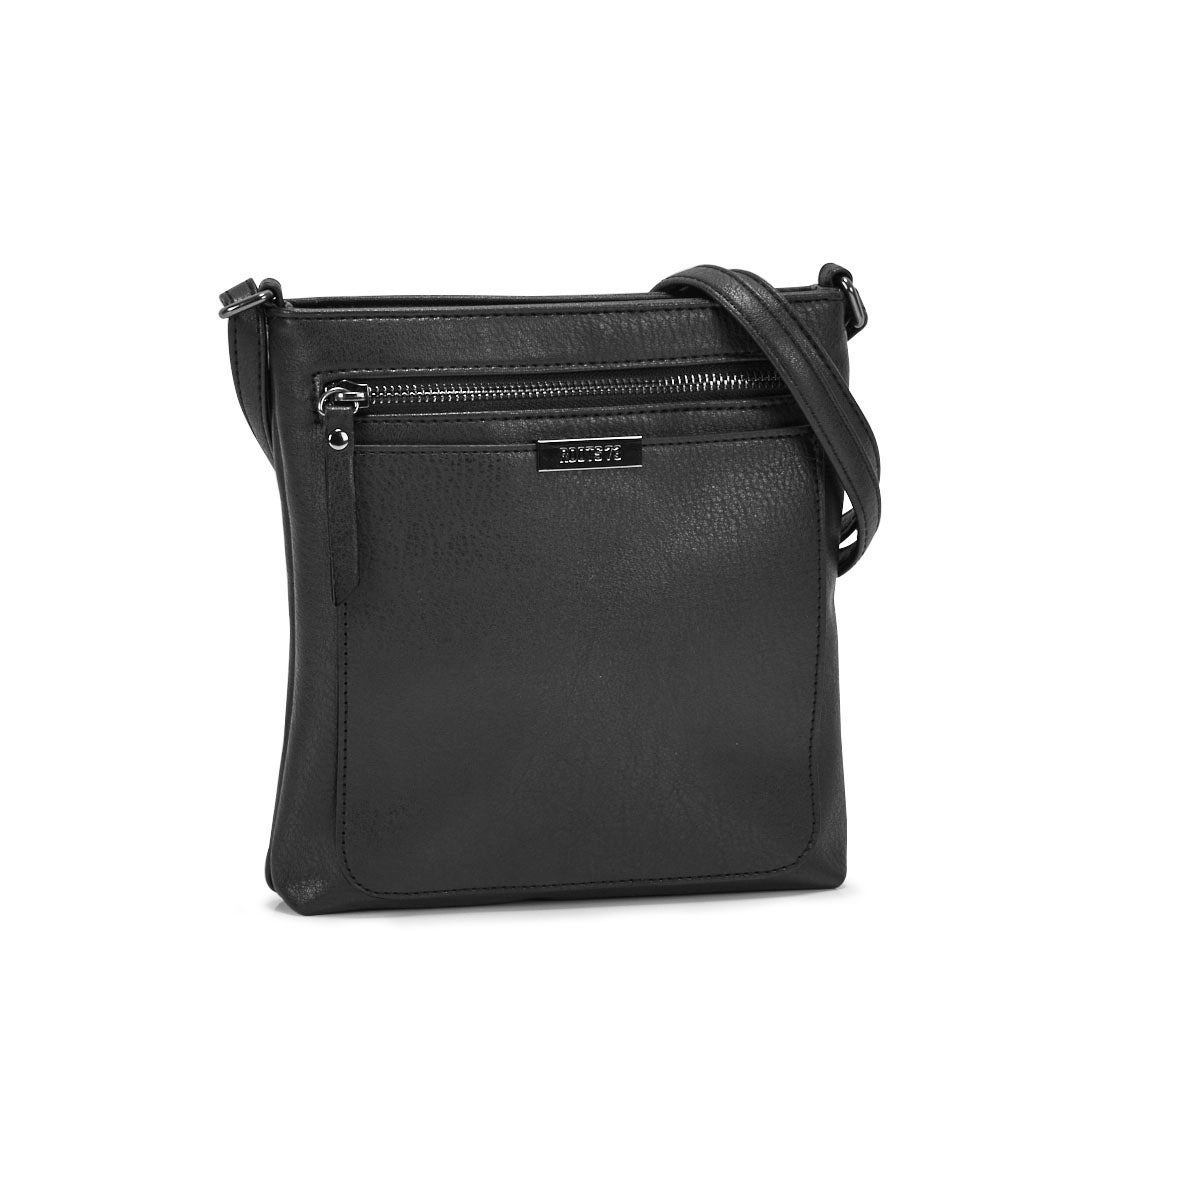 Lds Roots73 black top zip crossbody bag